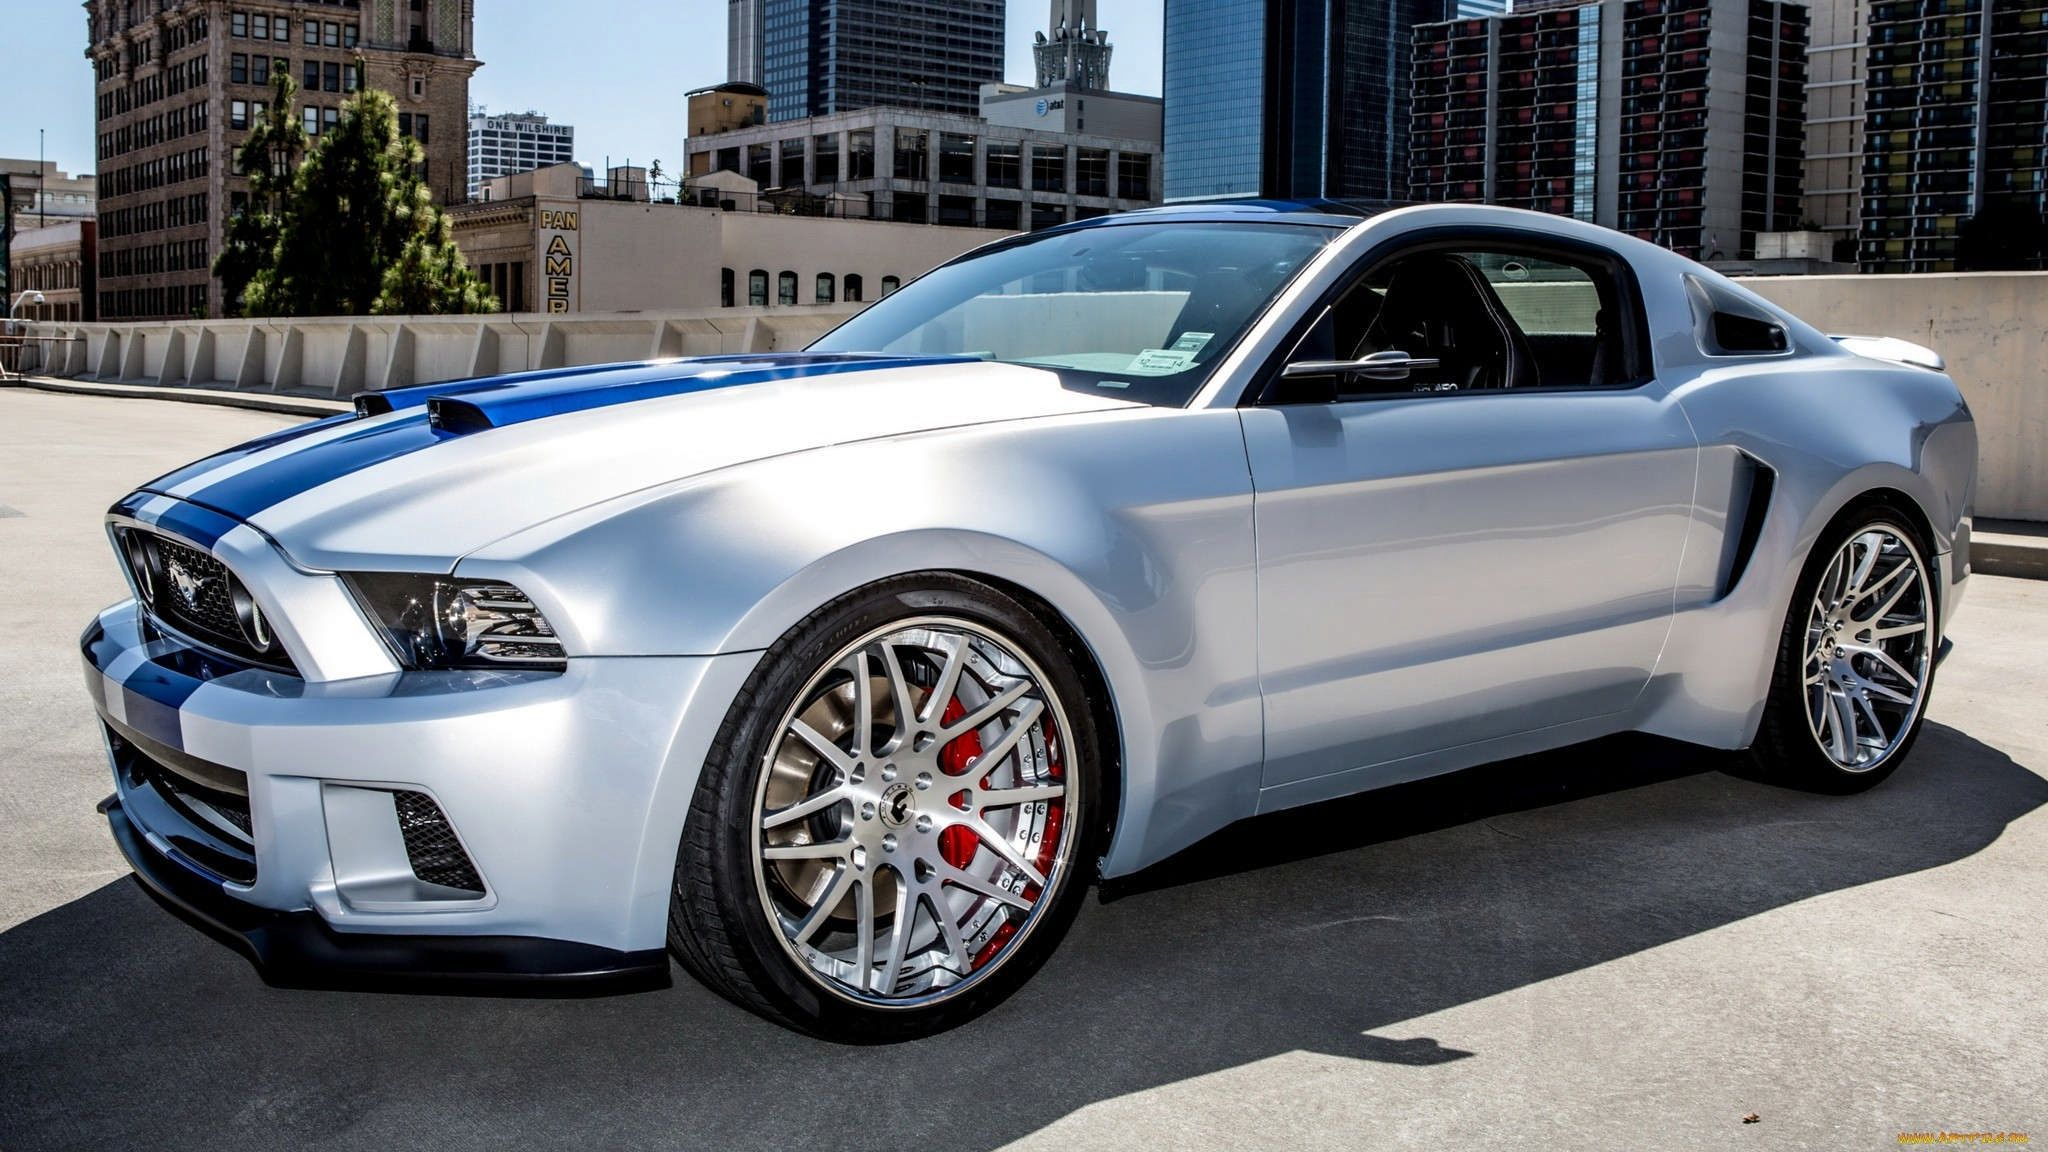 cars shelby gt500 and super snake on pinterest 2016 ford mustang shelby gt500 convertible interior - 2015 Ford Mustang Shelby Gt500 Convertible